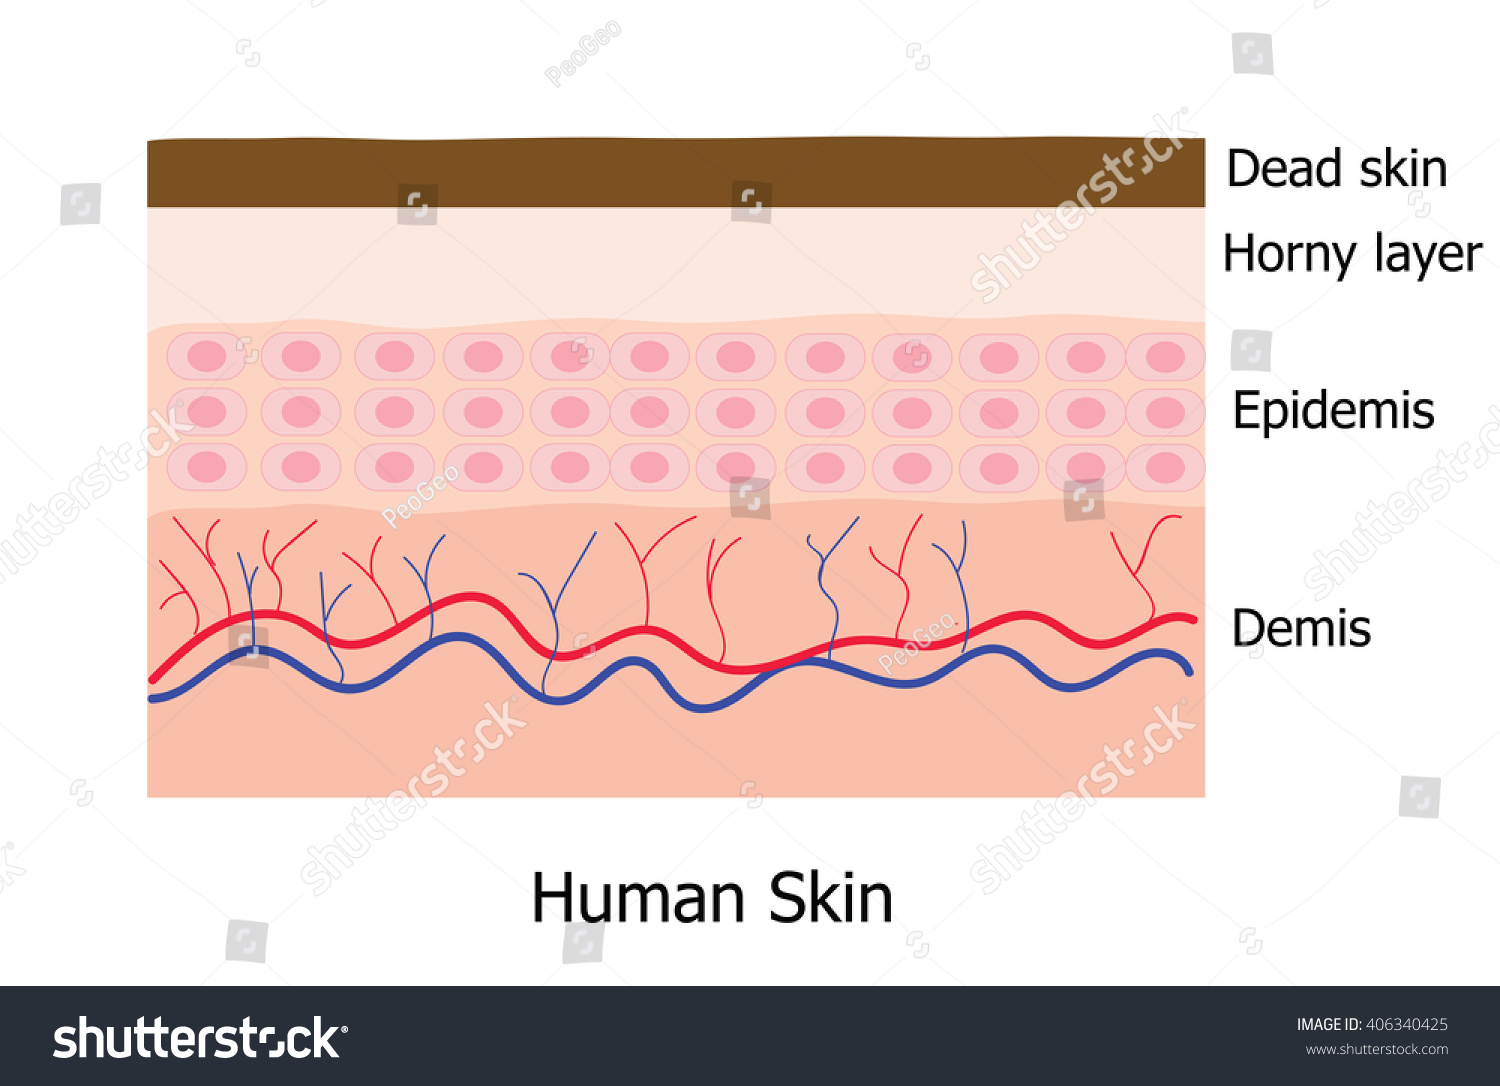 Human skin layer consists dead skin stock vector 406340425 human skin layer consists of dead skin horny layer epidemis and demis pooptronica Image collections